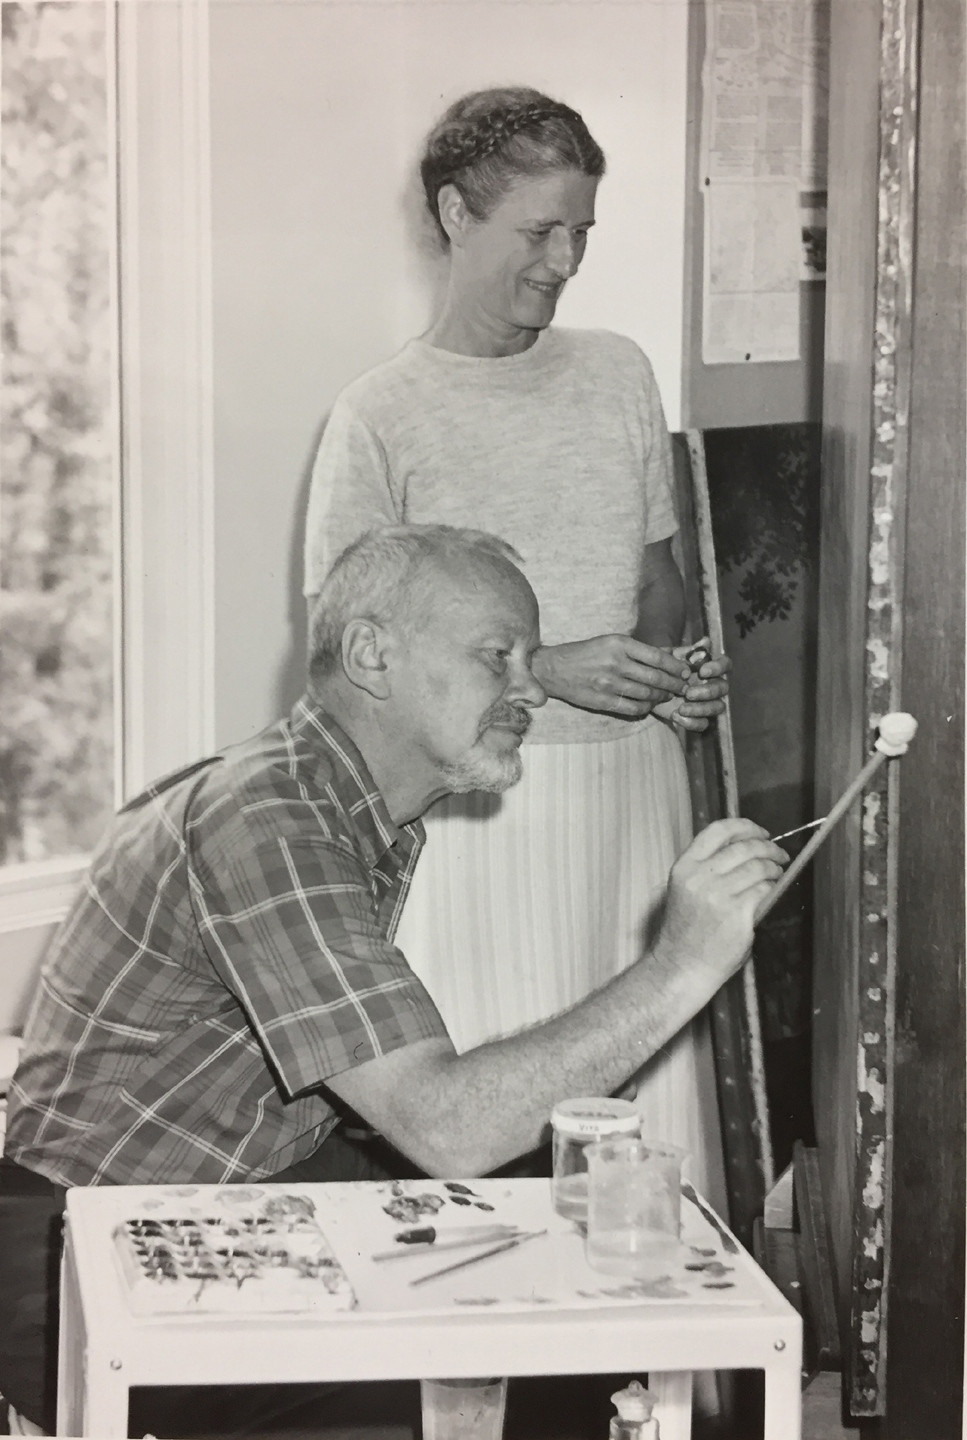 Sheldon and Caroline Keck in their studio. Photograph taken by Frank Rollins, Cooperstown, NY. Image courtesy of Albert Keck.